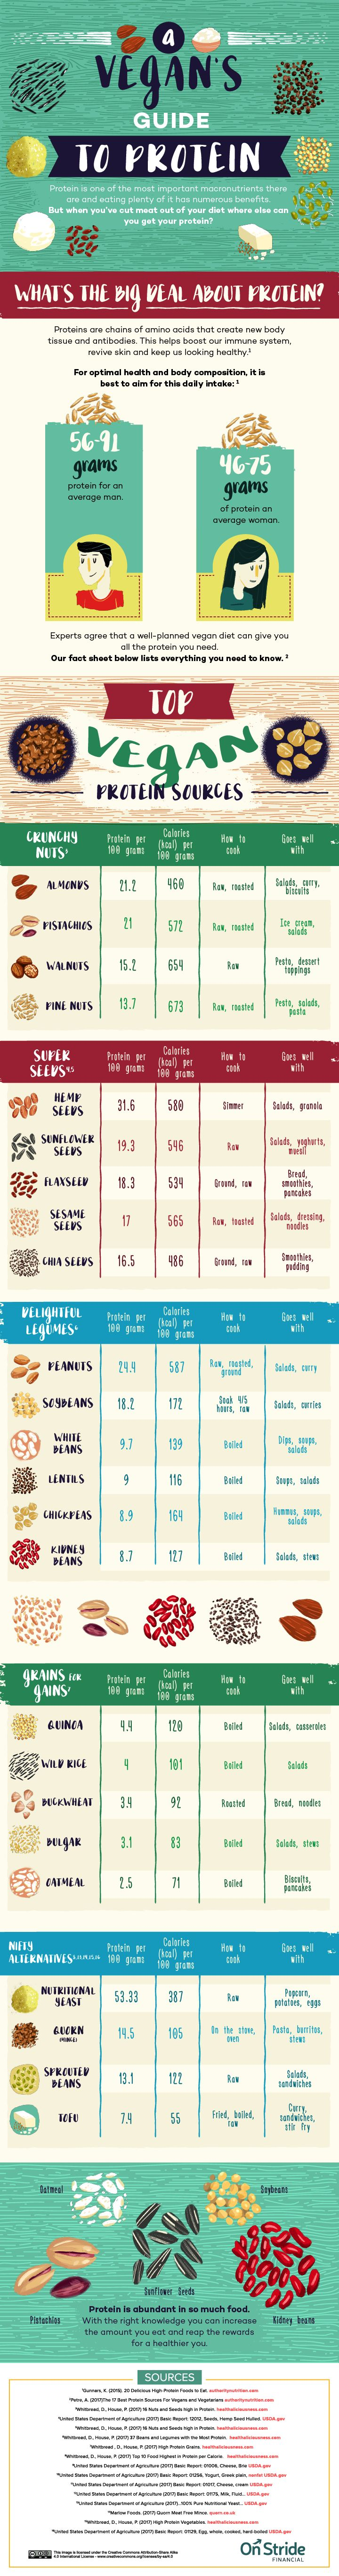 vegan protein sources chart http://www.weightlossjumpstar.com/category/nutriton/